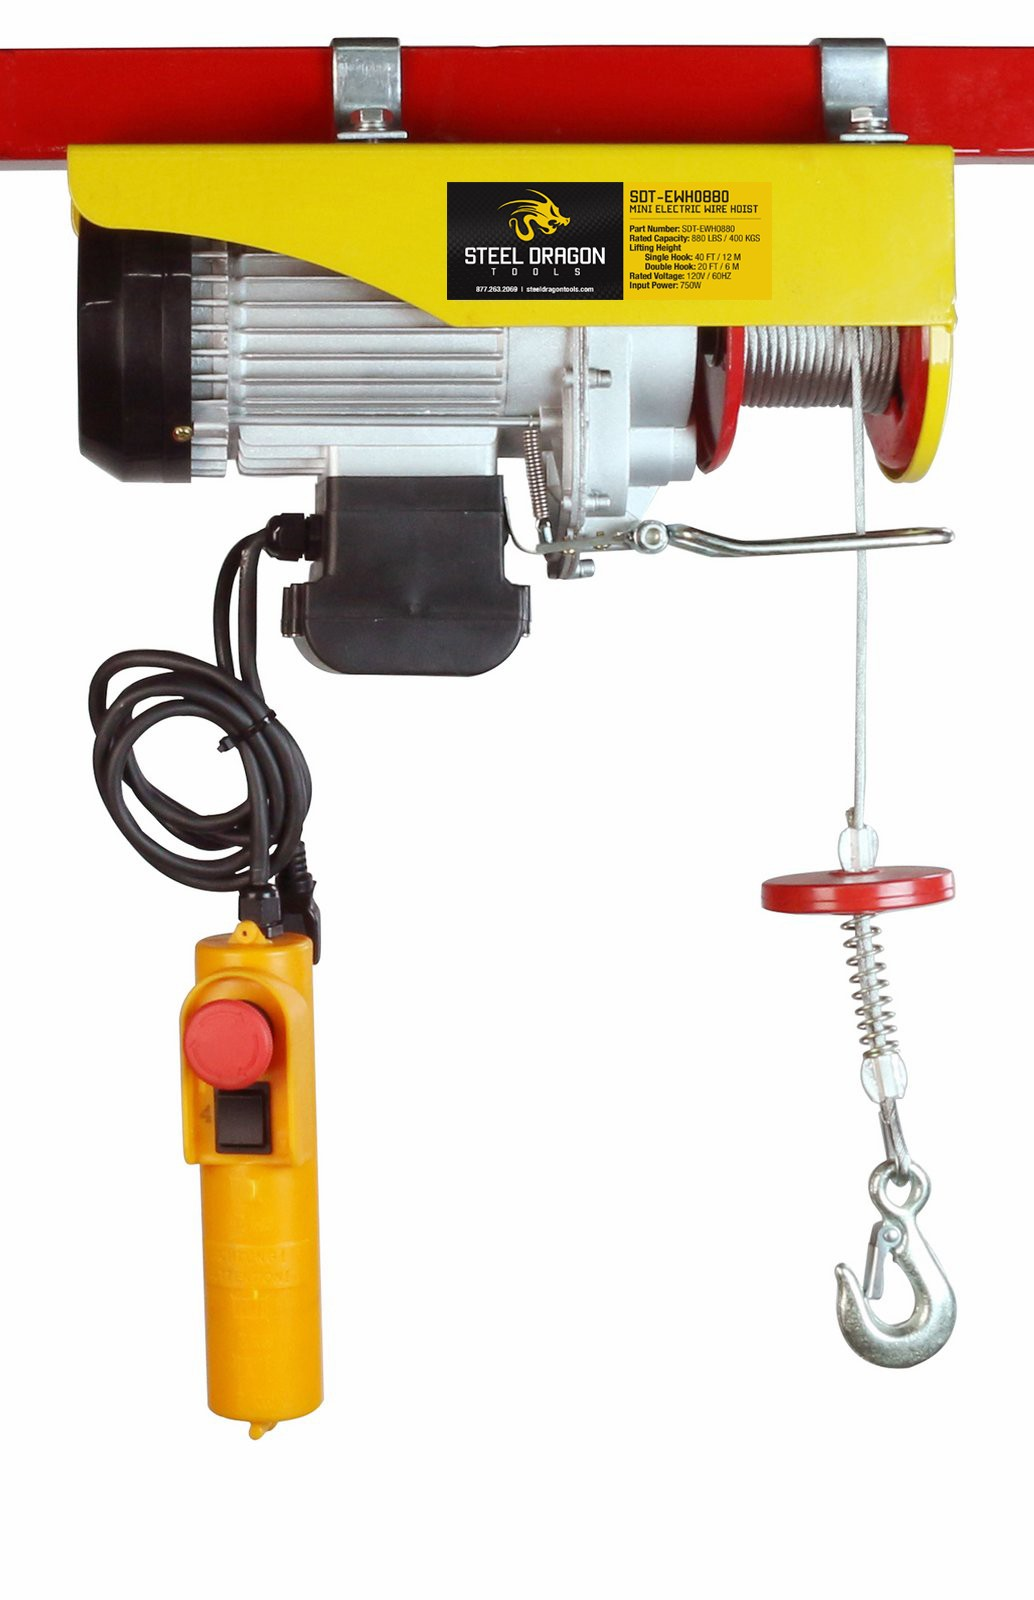 Steel Dragon Tools® 880 LBS Mini Electric Wire Cable Hoist